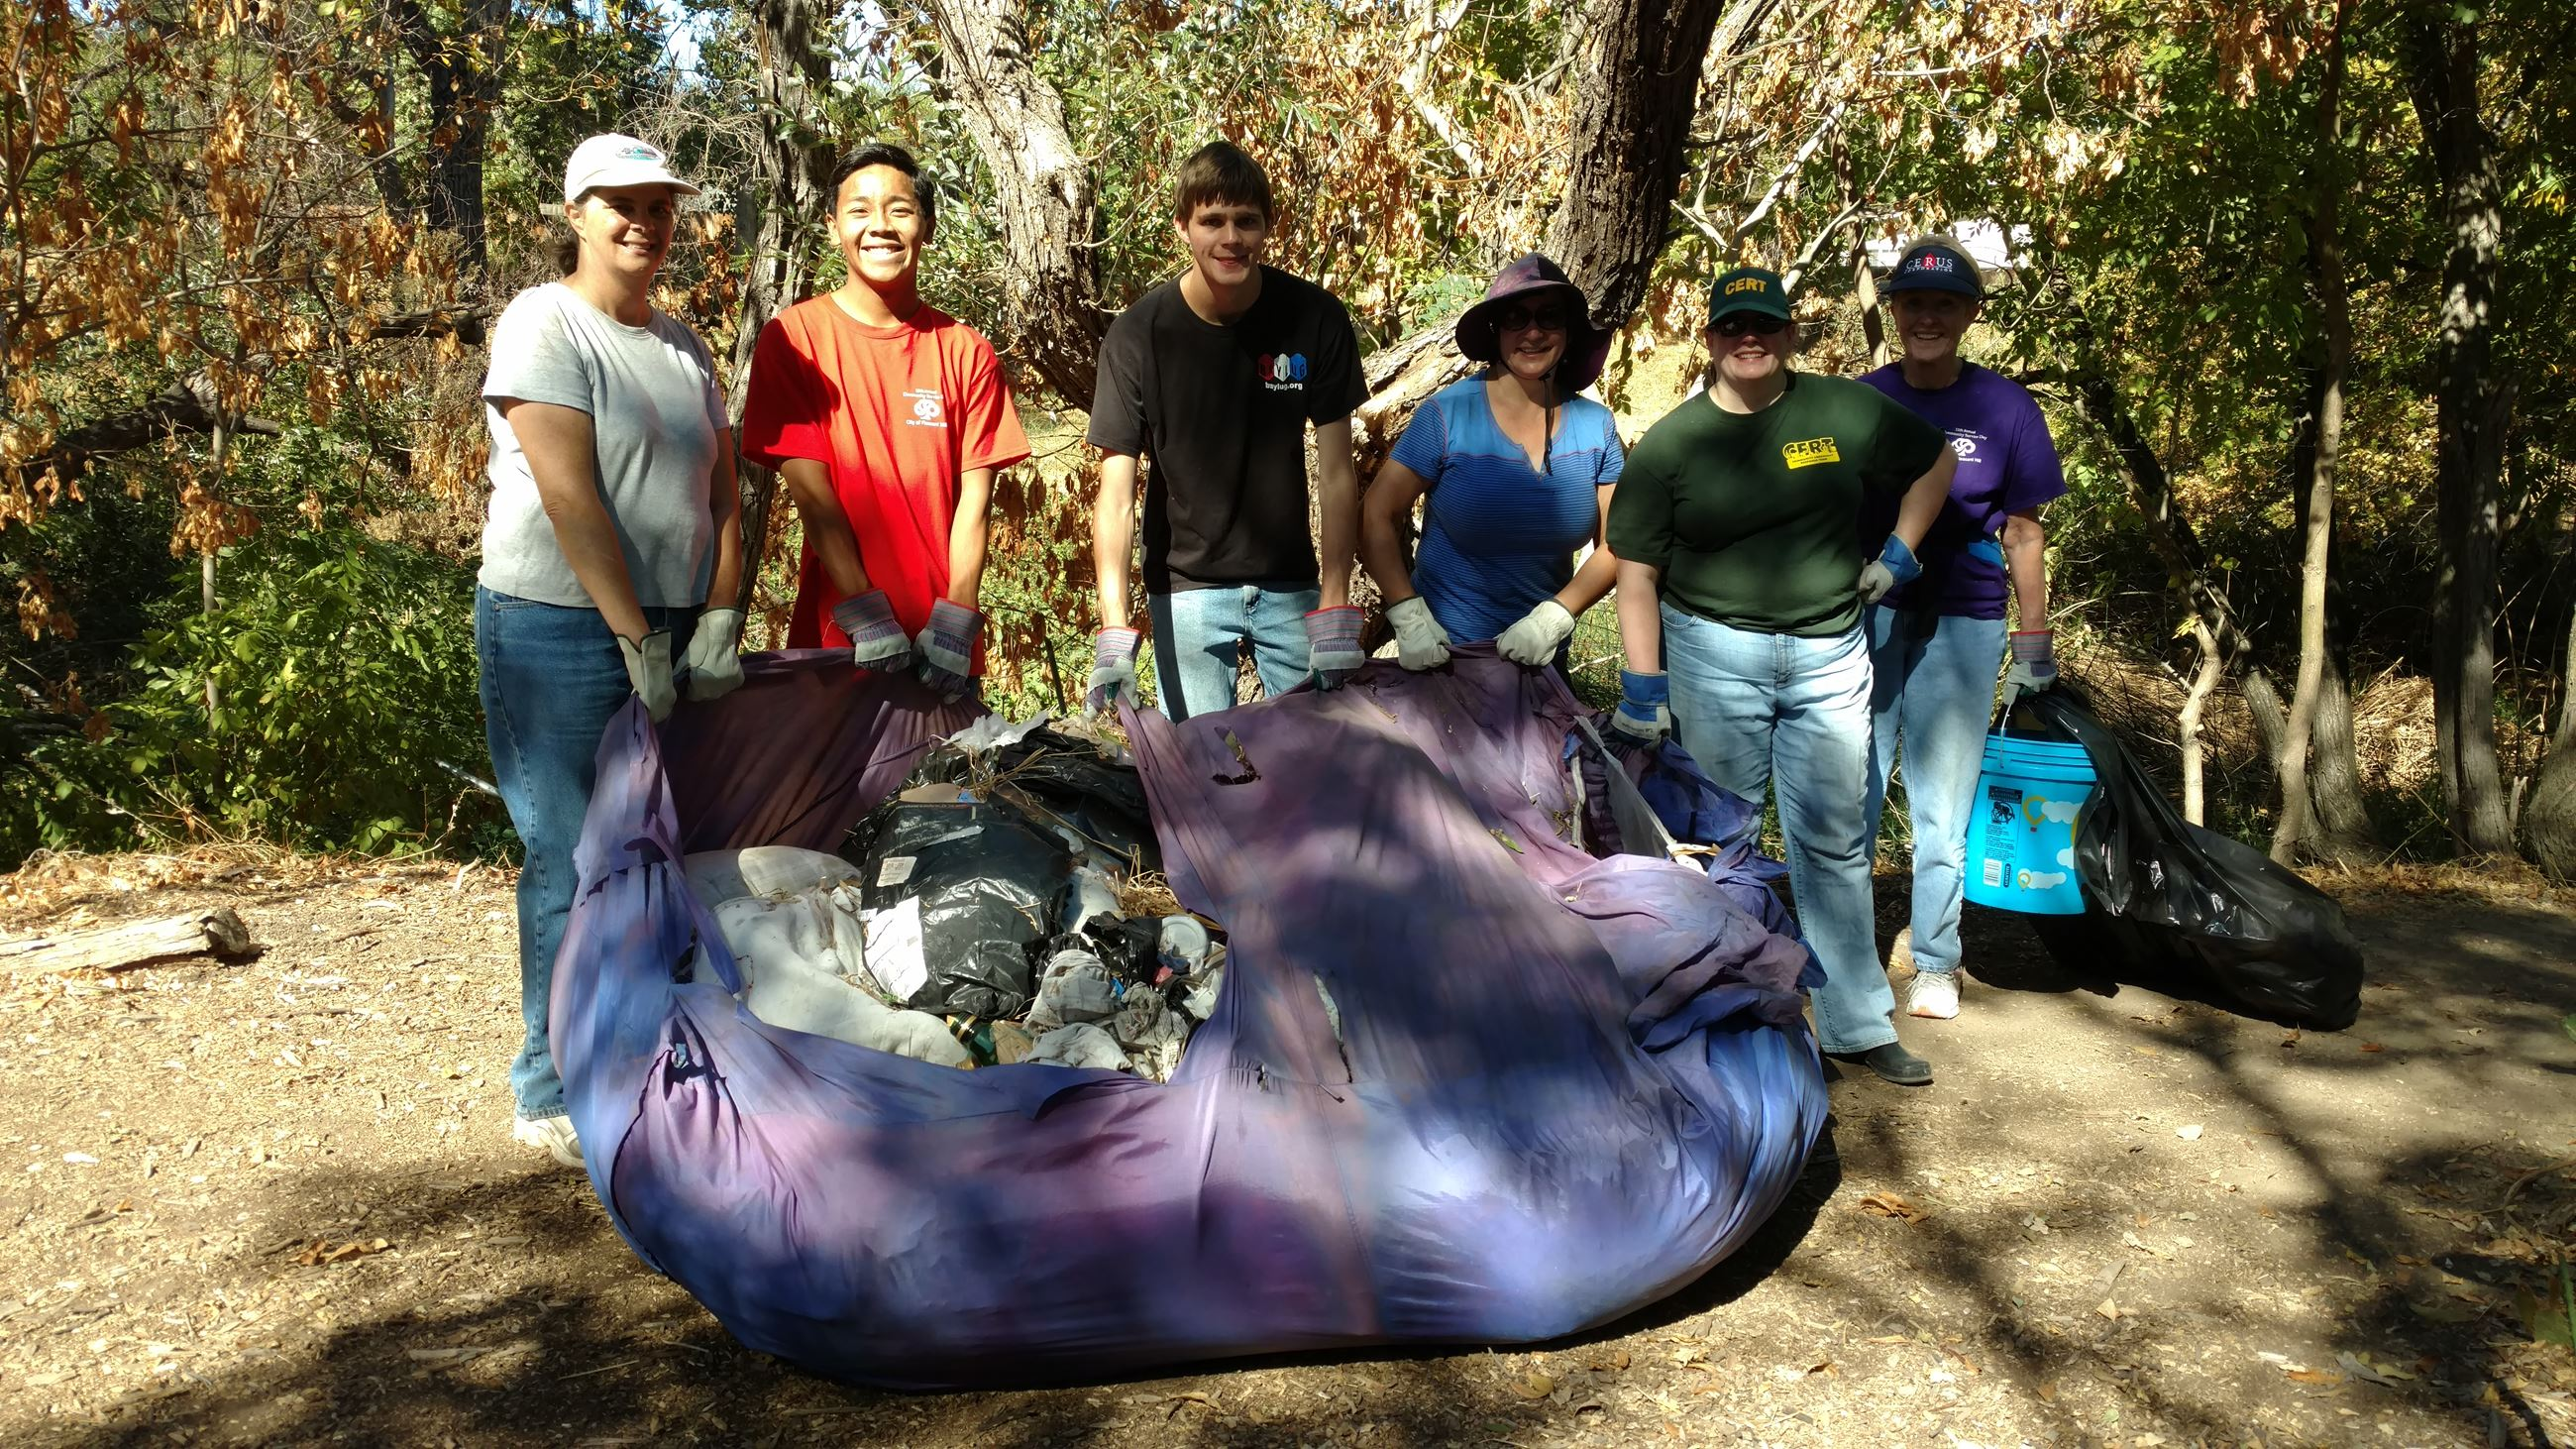 Ellinwood Creek - A Third of the Mess in the Giant Bag